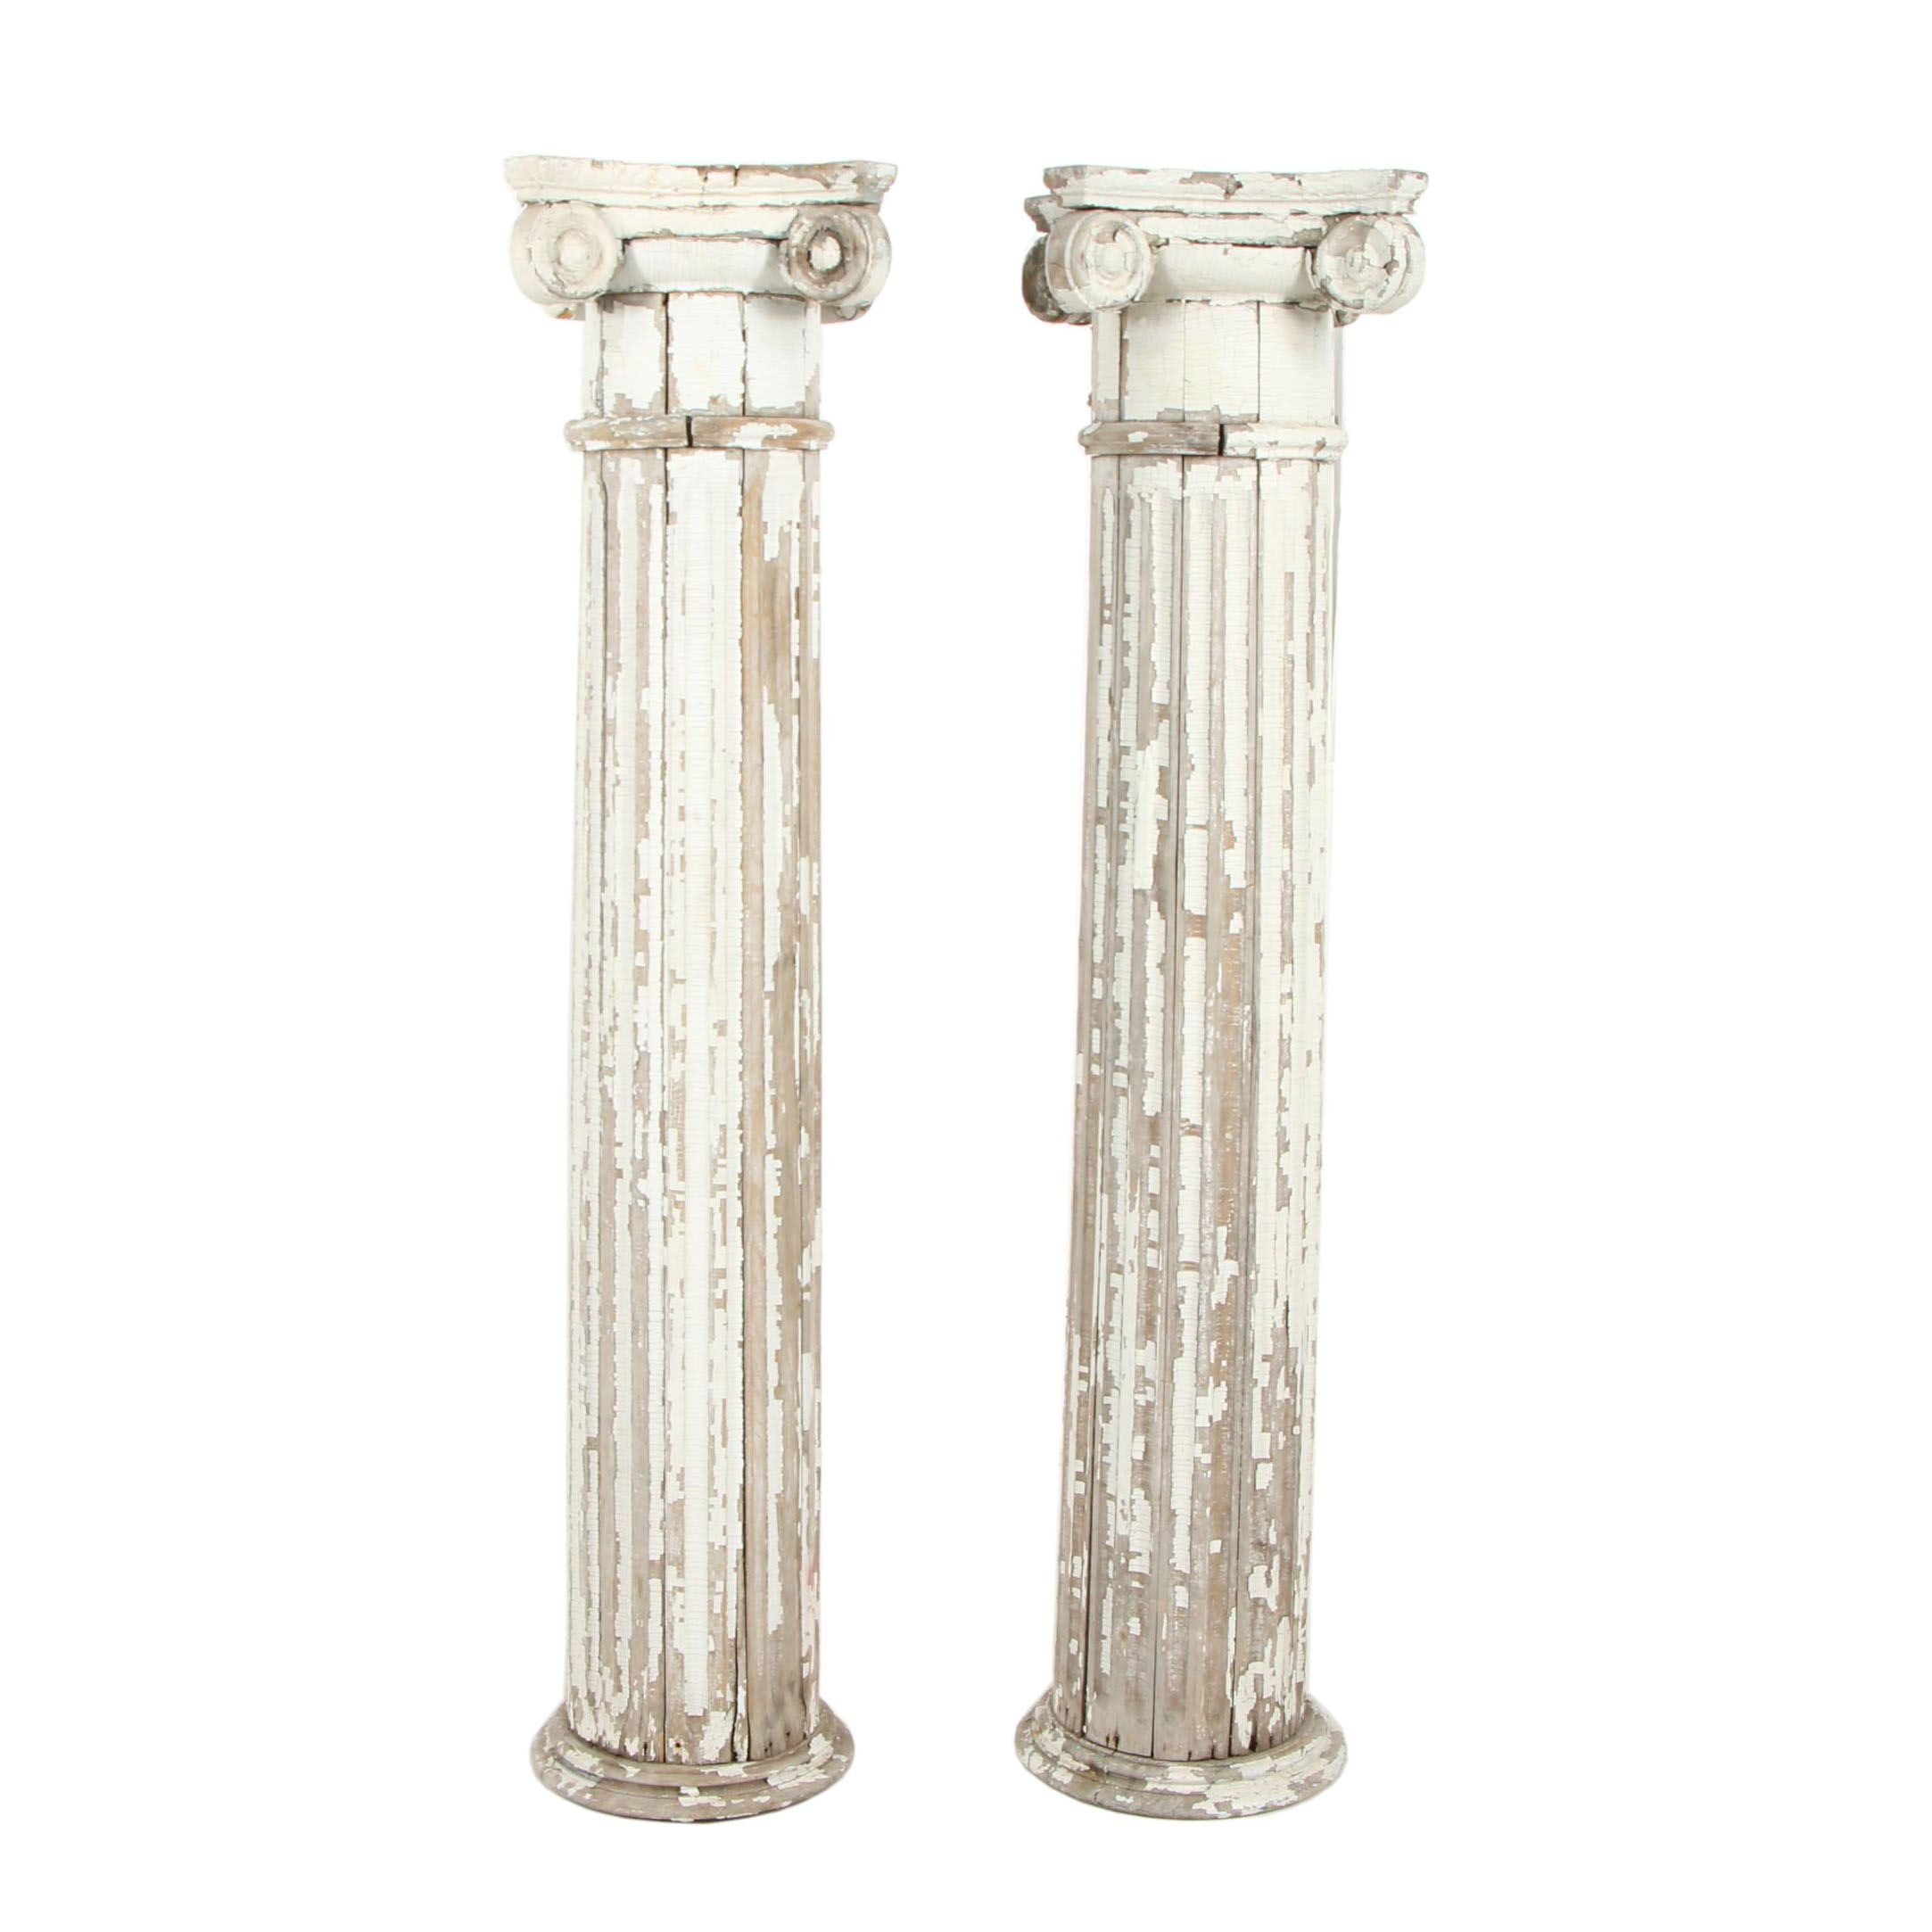 Two Distressed Columns